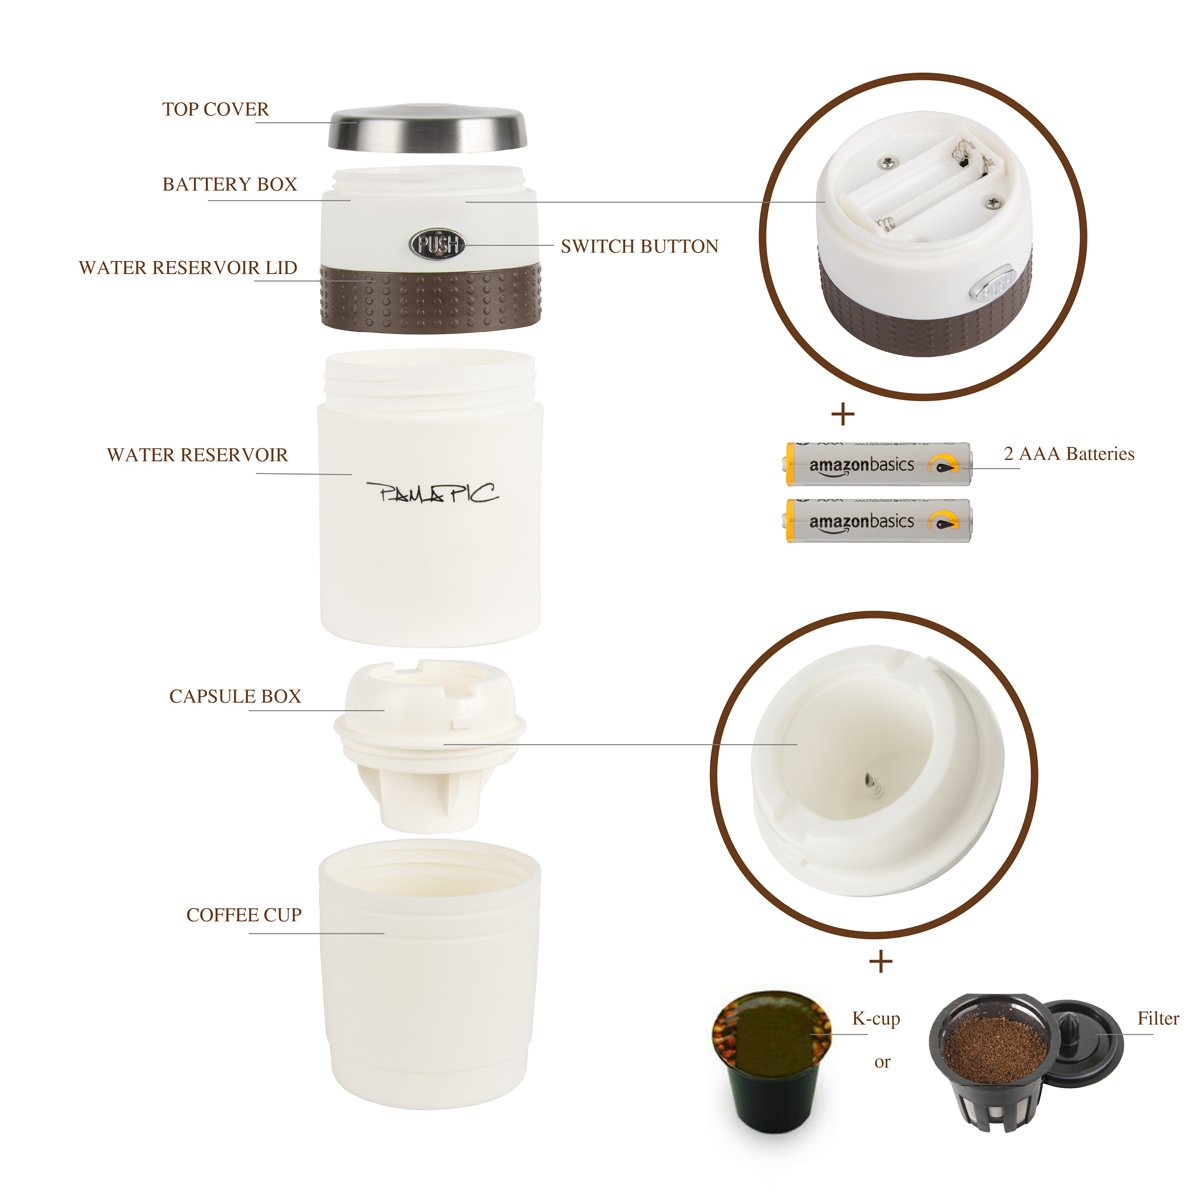 Pamapic Portable Coffee Maker, Mini Electric Espresso Machine with Reusable K-cup Coffee Filter (Ground Coffee & Capsule Compatible), Quick Coffee Machine for Travel, Home, Office 【150ML, Ivory White】 by Pamapic (Image #2)